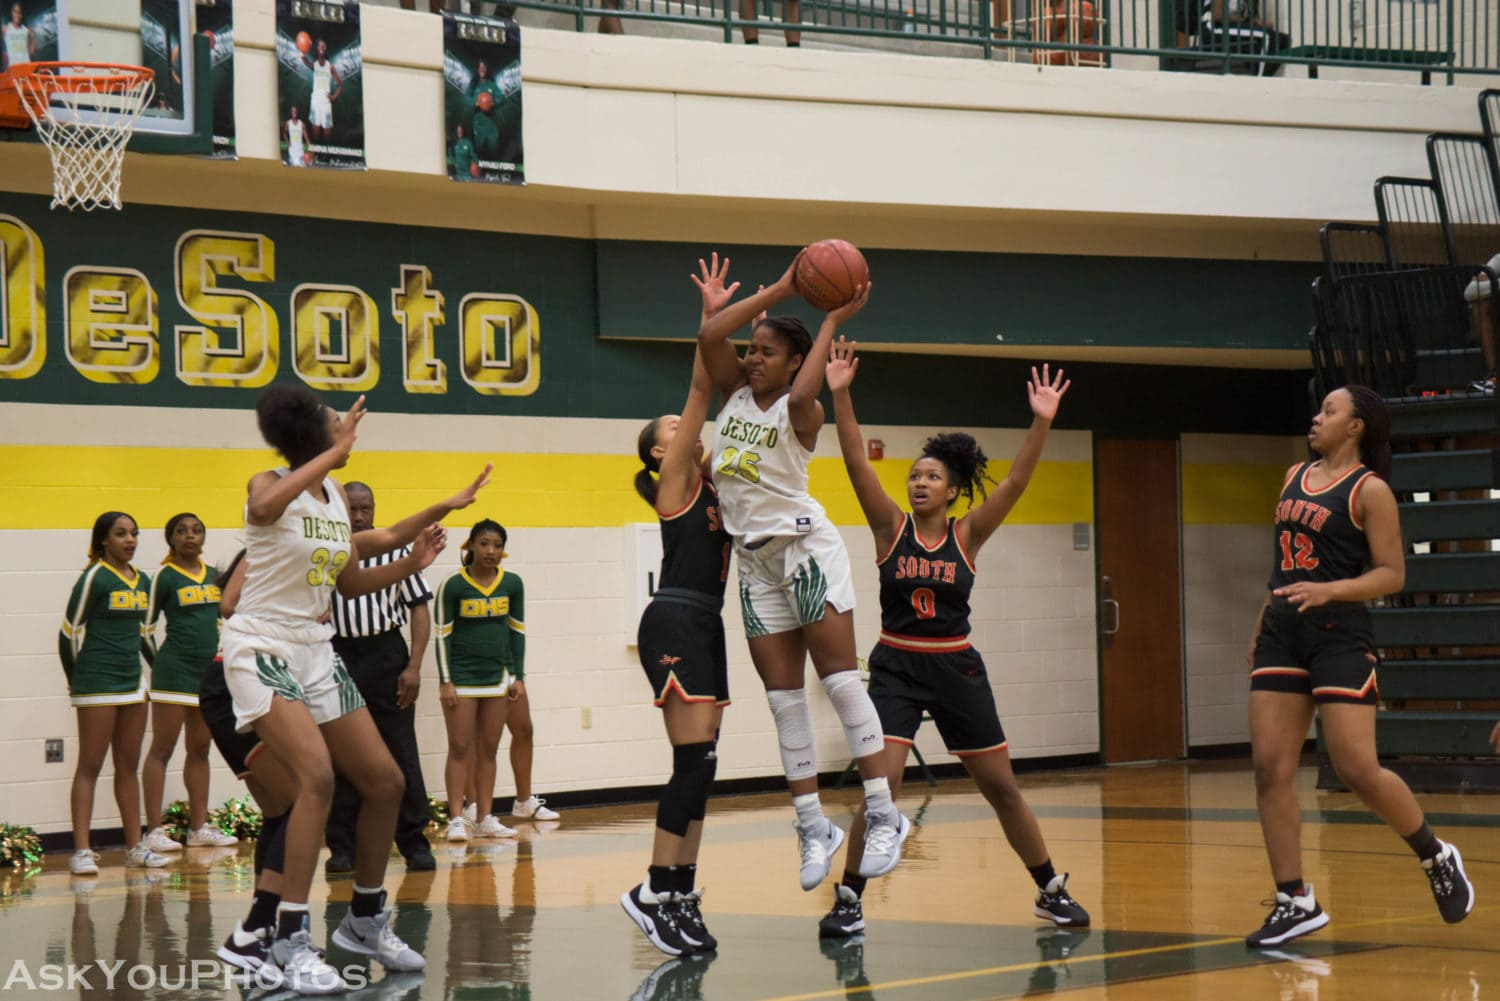 DeSoto Lady Eagles